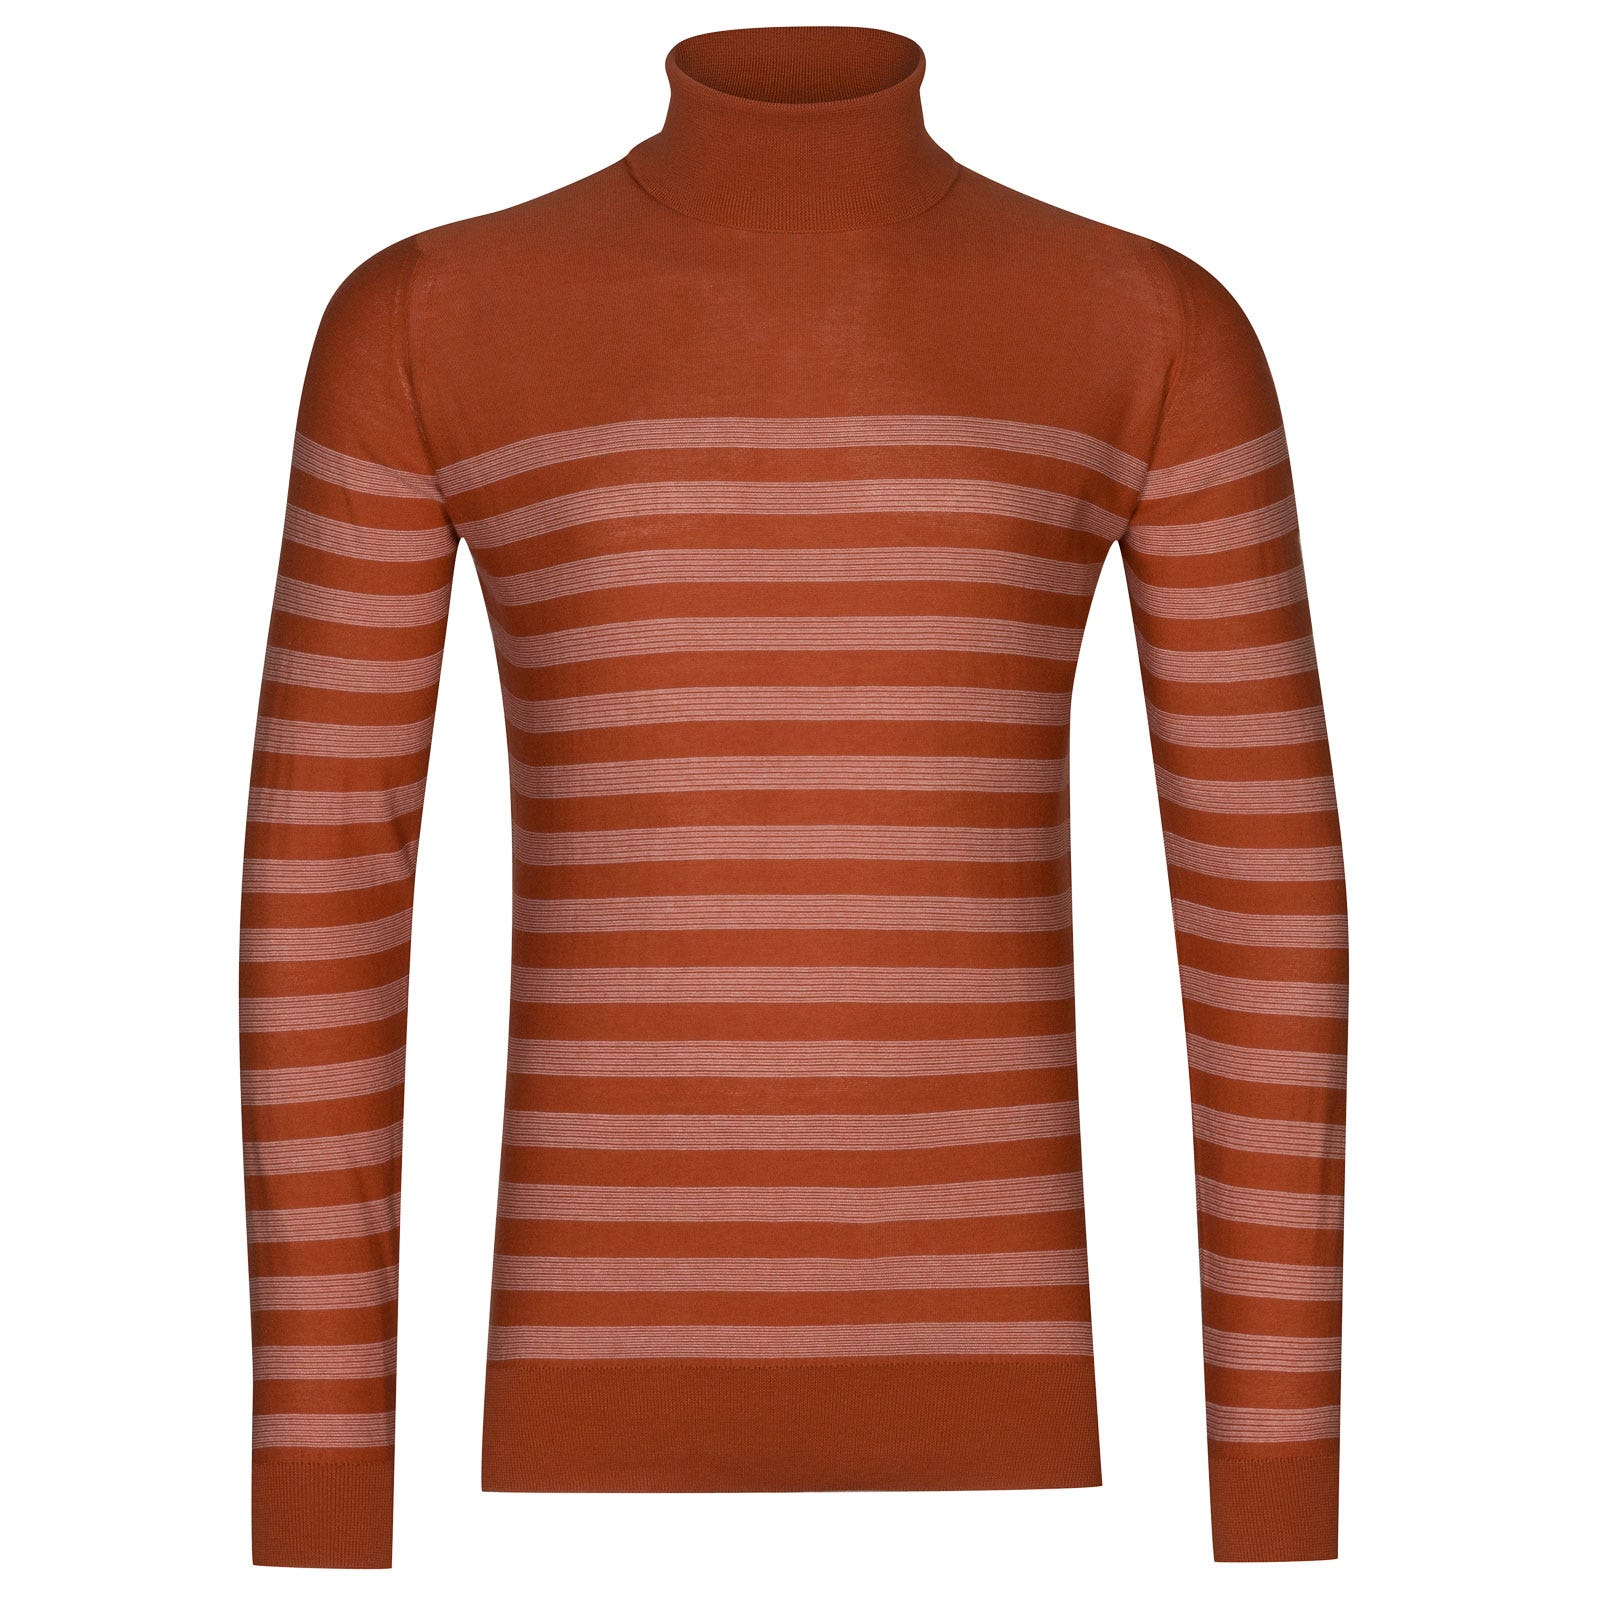 John Smedley tenby Sea Island Cotton Sweater in Flare Orange/White-L